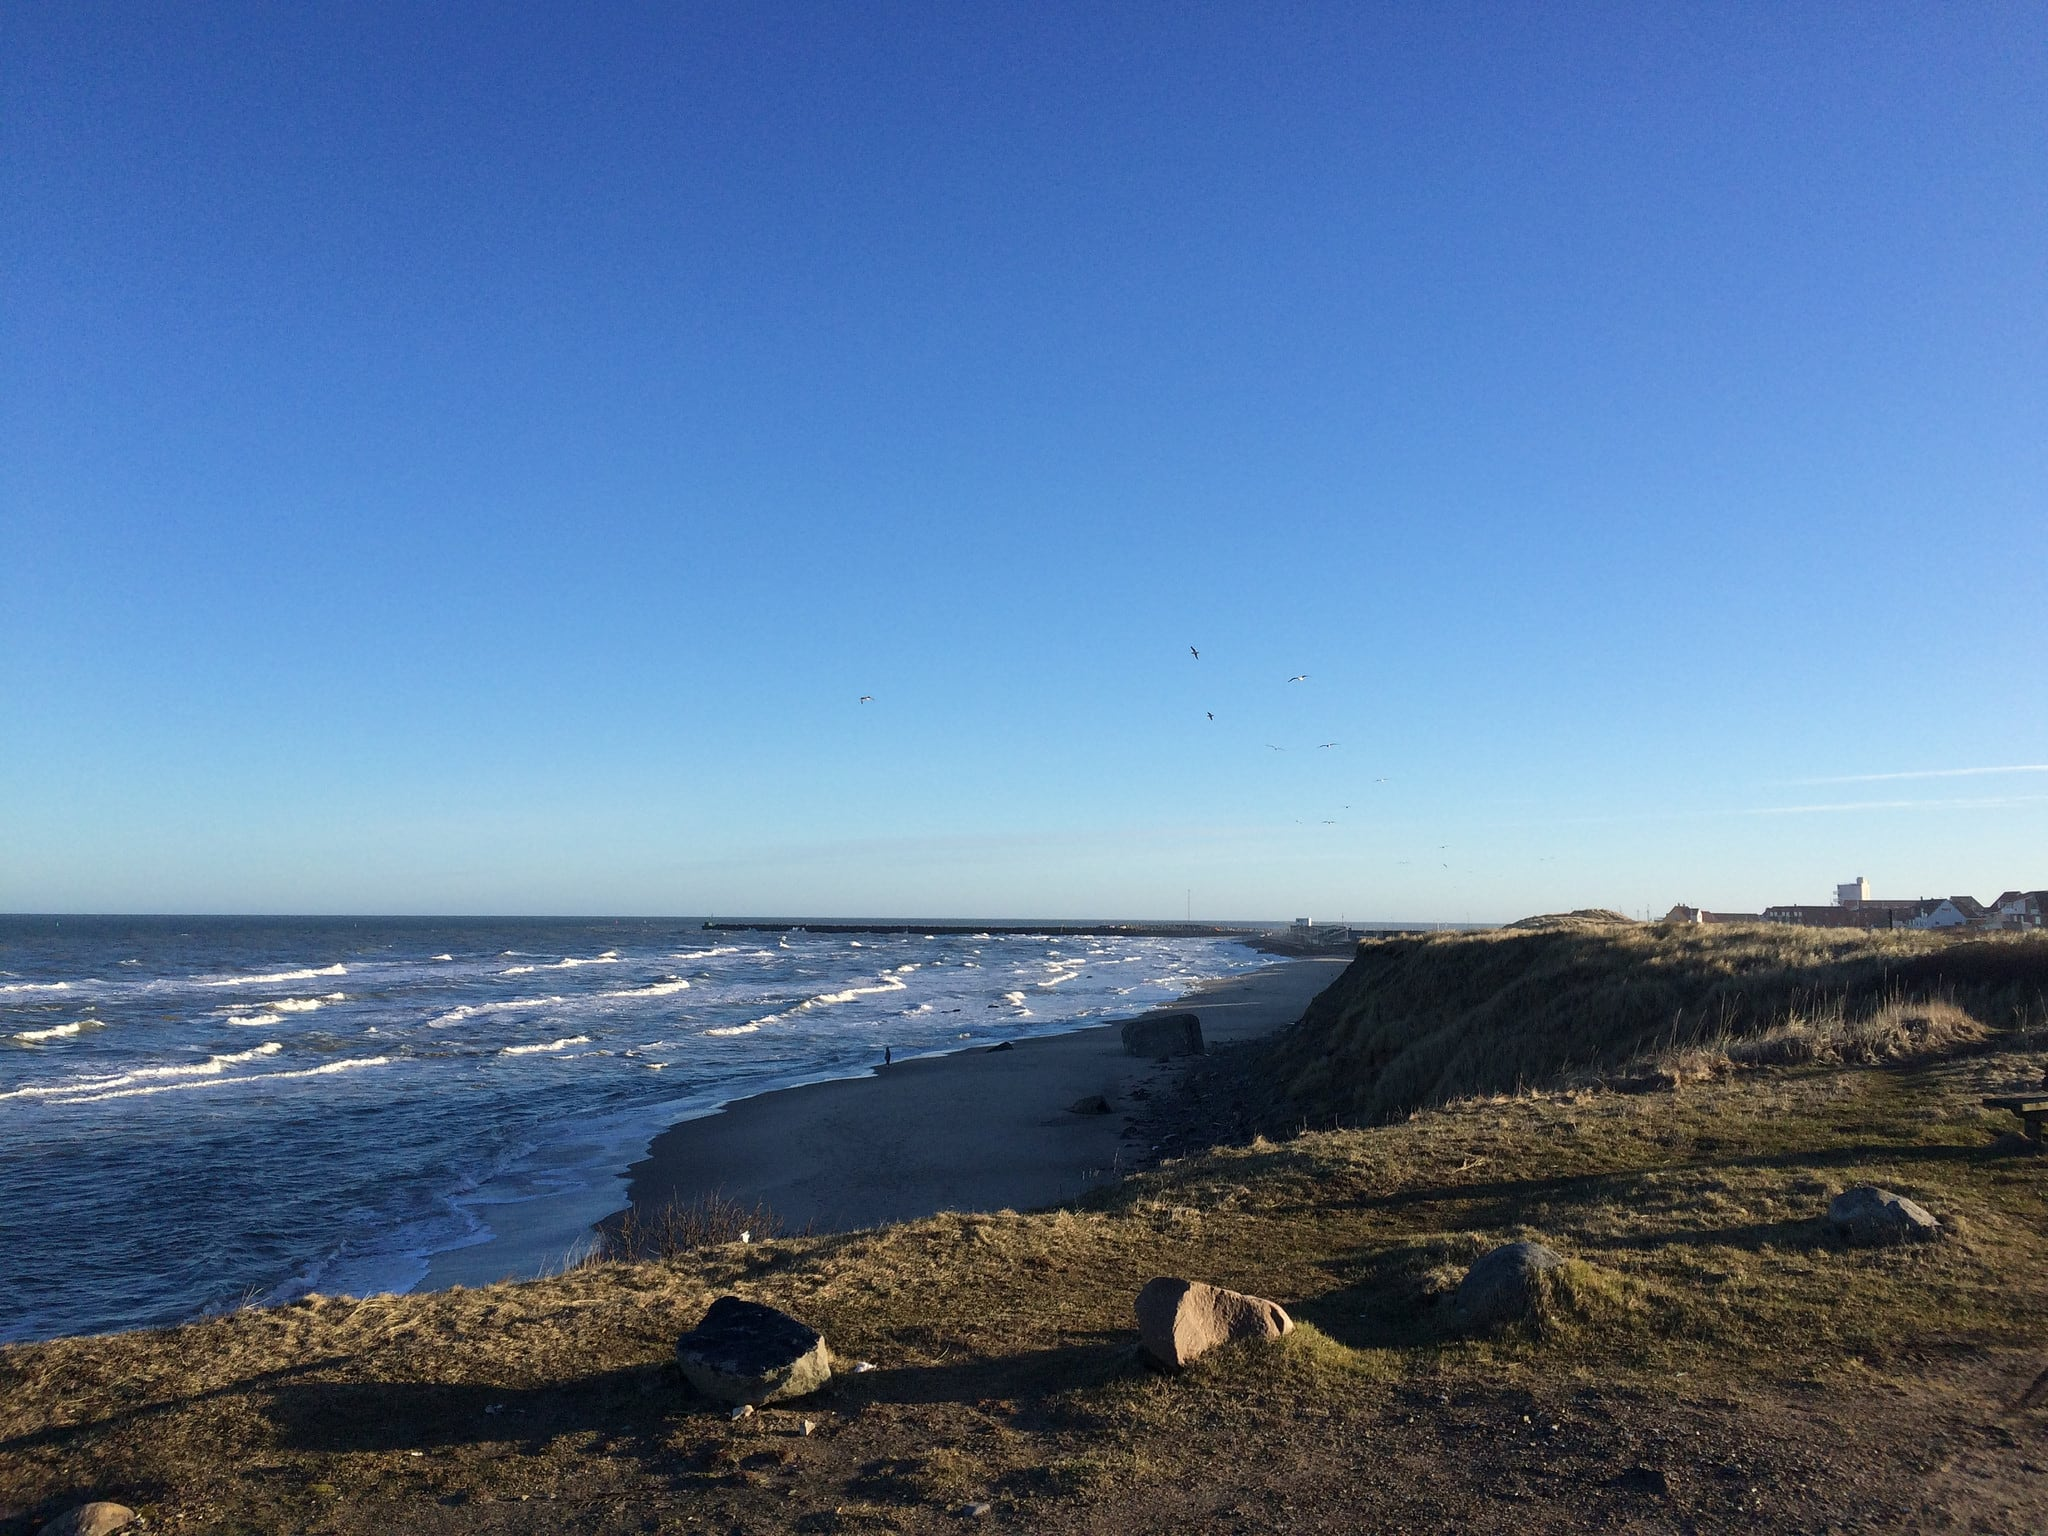 Image of Hirtshals Strand Beach with a length of 1405 meters.